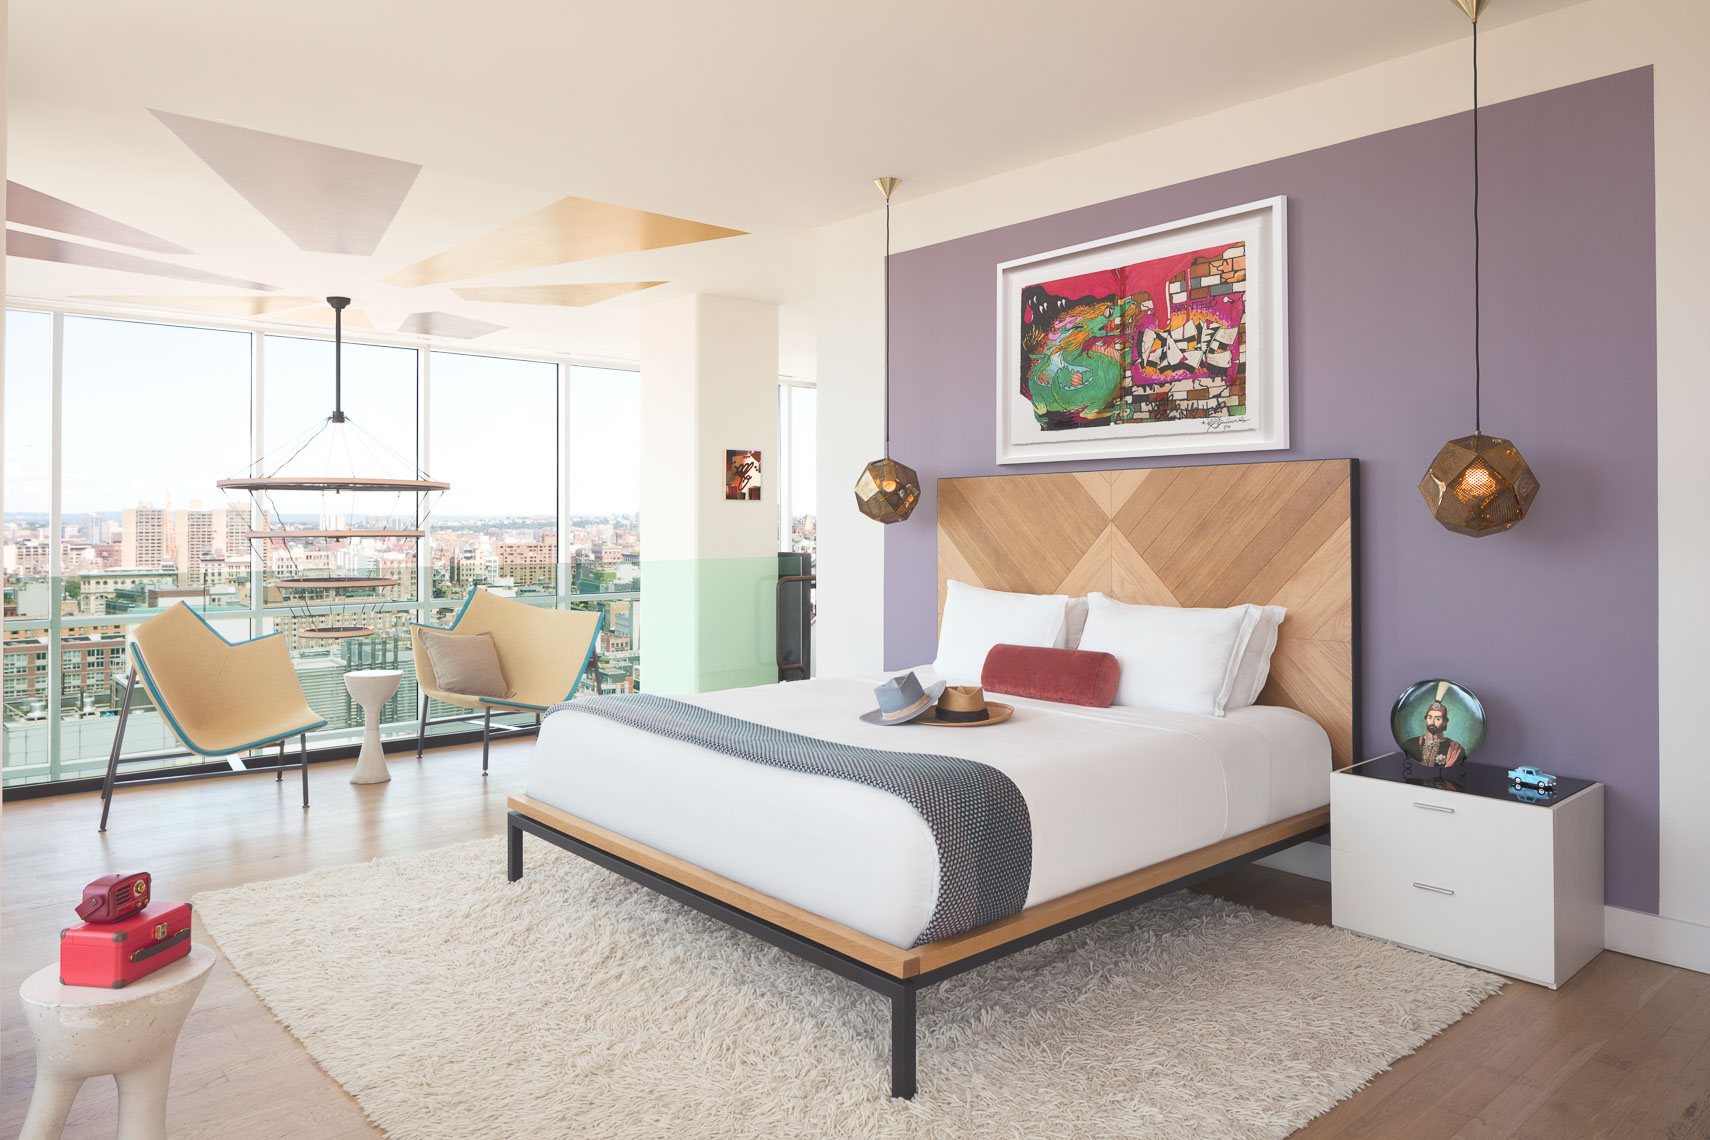 Hotel room with panoramic city views and large graffiti artwork on wall